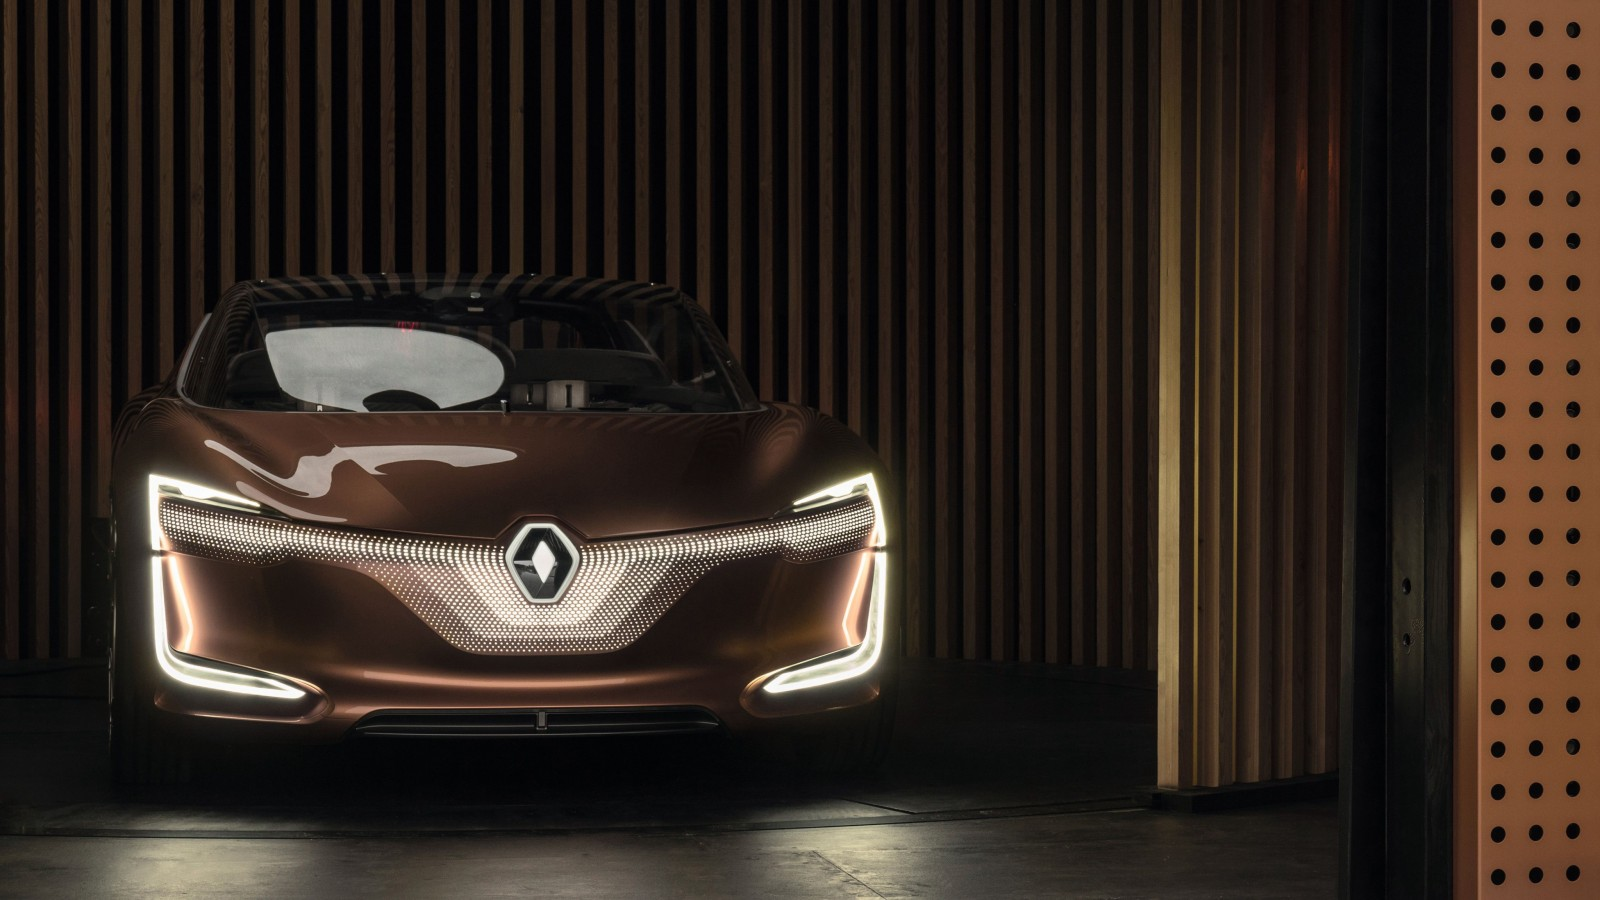 Renault Symbioz Autonomous Electric Car 4K 2 Wallpaper